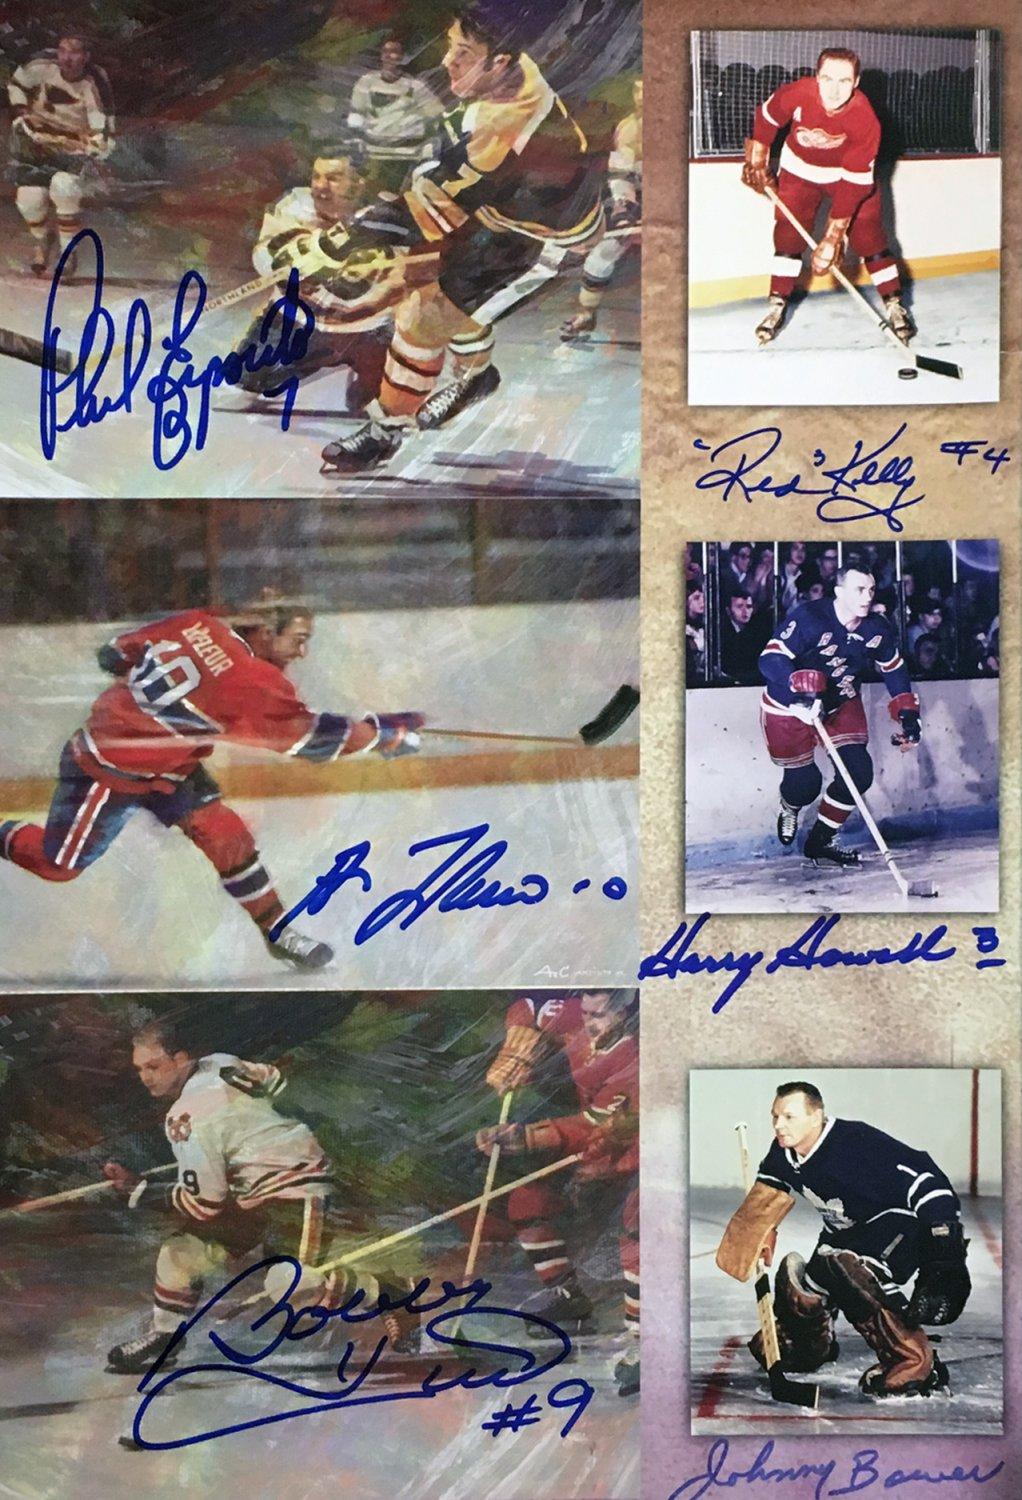 Signed Poster: Hull, Bower, Lafleur,Espoitio, Kelly, Howell - Original Six